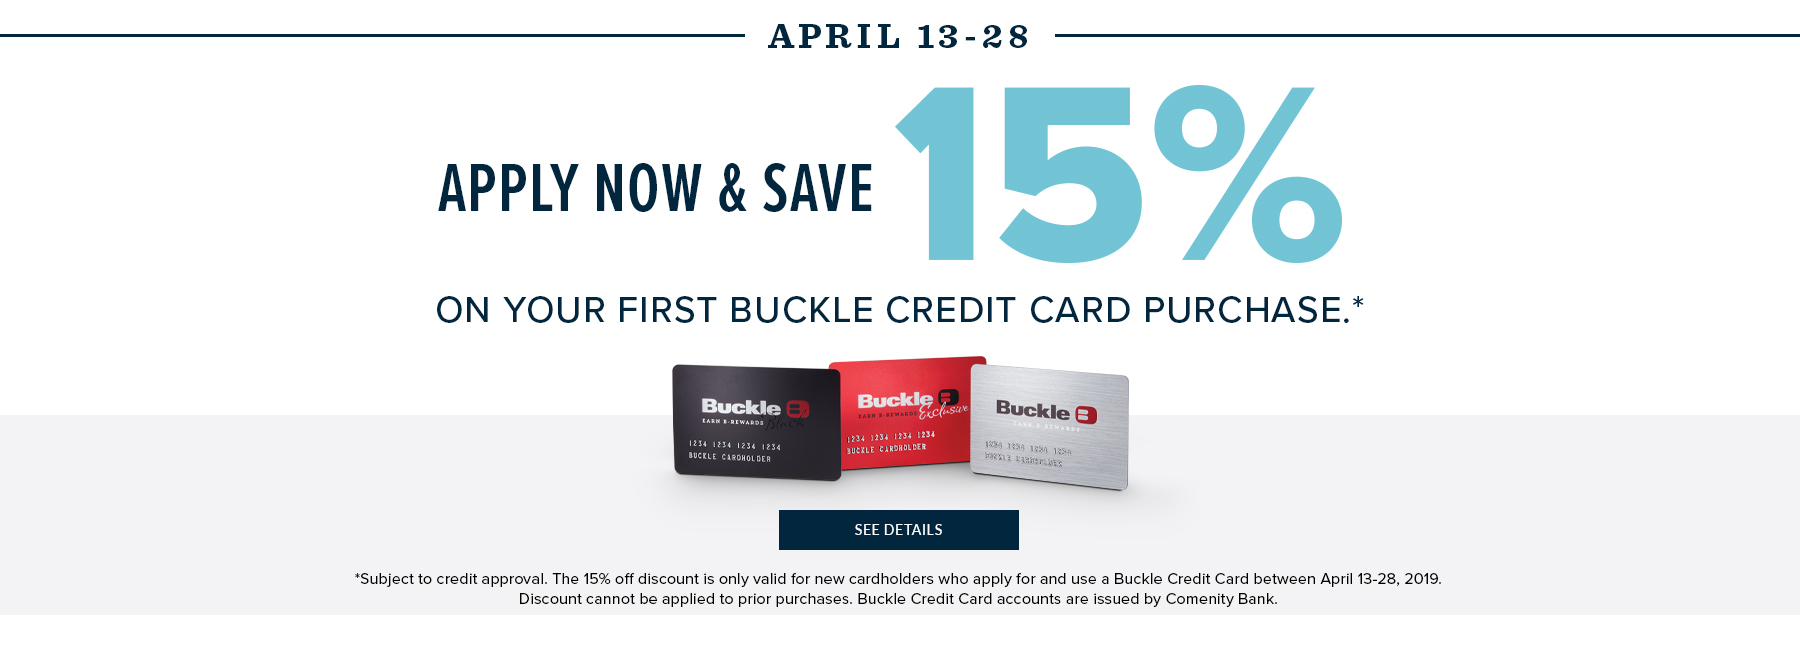 Apply Now & Save 15% on your first Buckle Credit Card purchase.* See Details